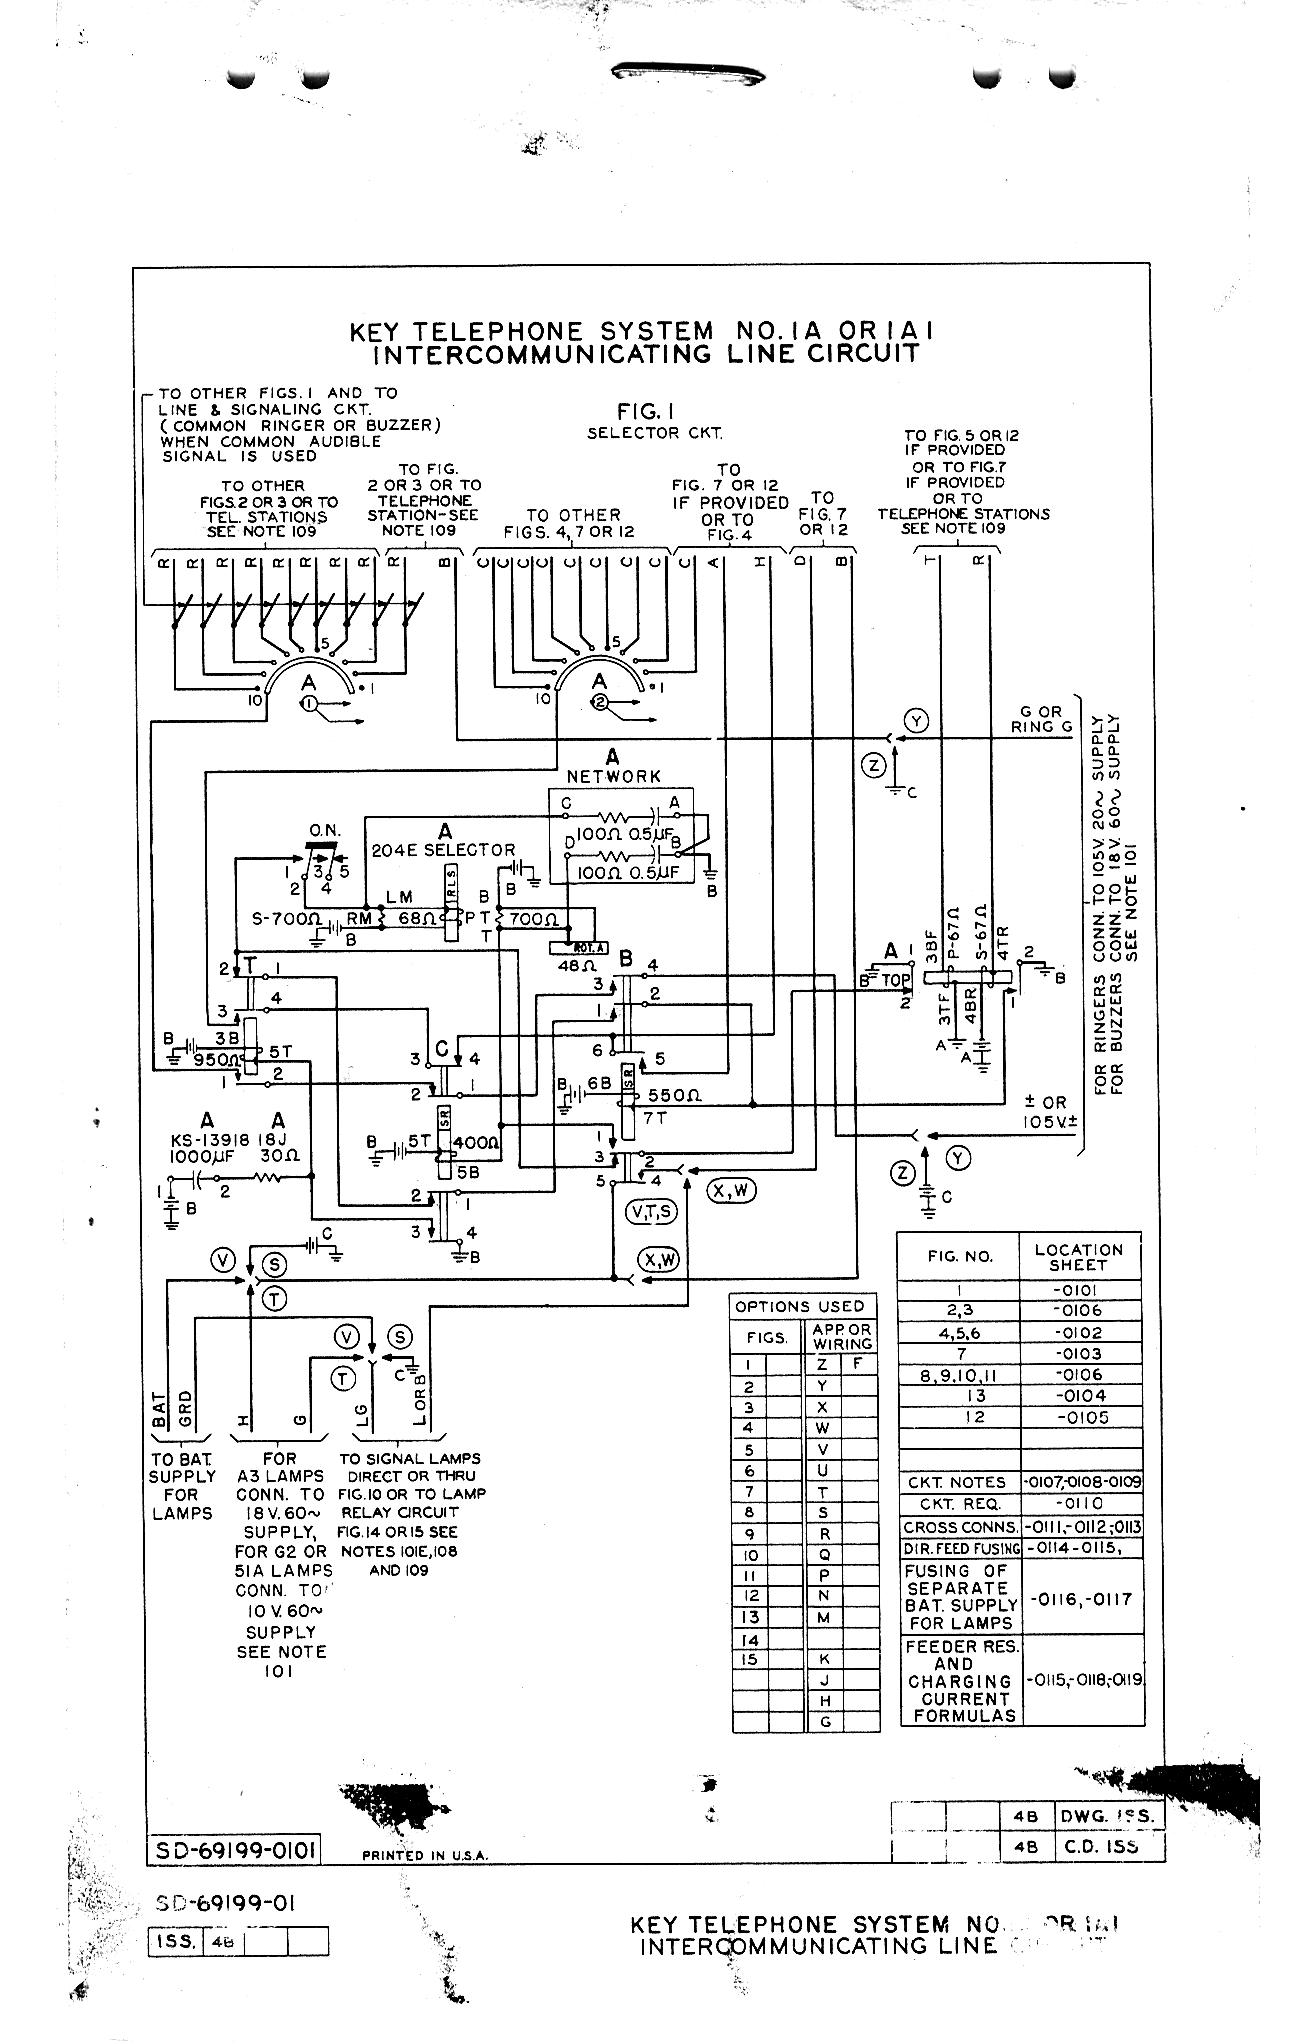 western electric candlestick desk telephone wiring schematic images of western electric candlestick desk telephone wiring schematic diagram or 1a1 circuits western